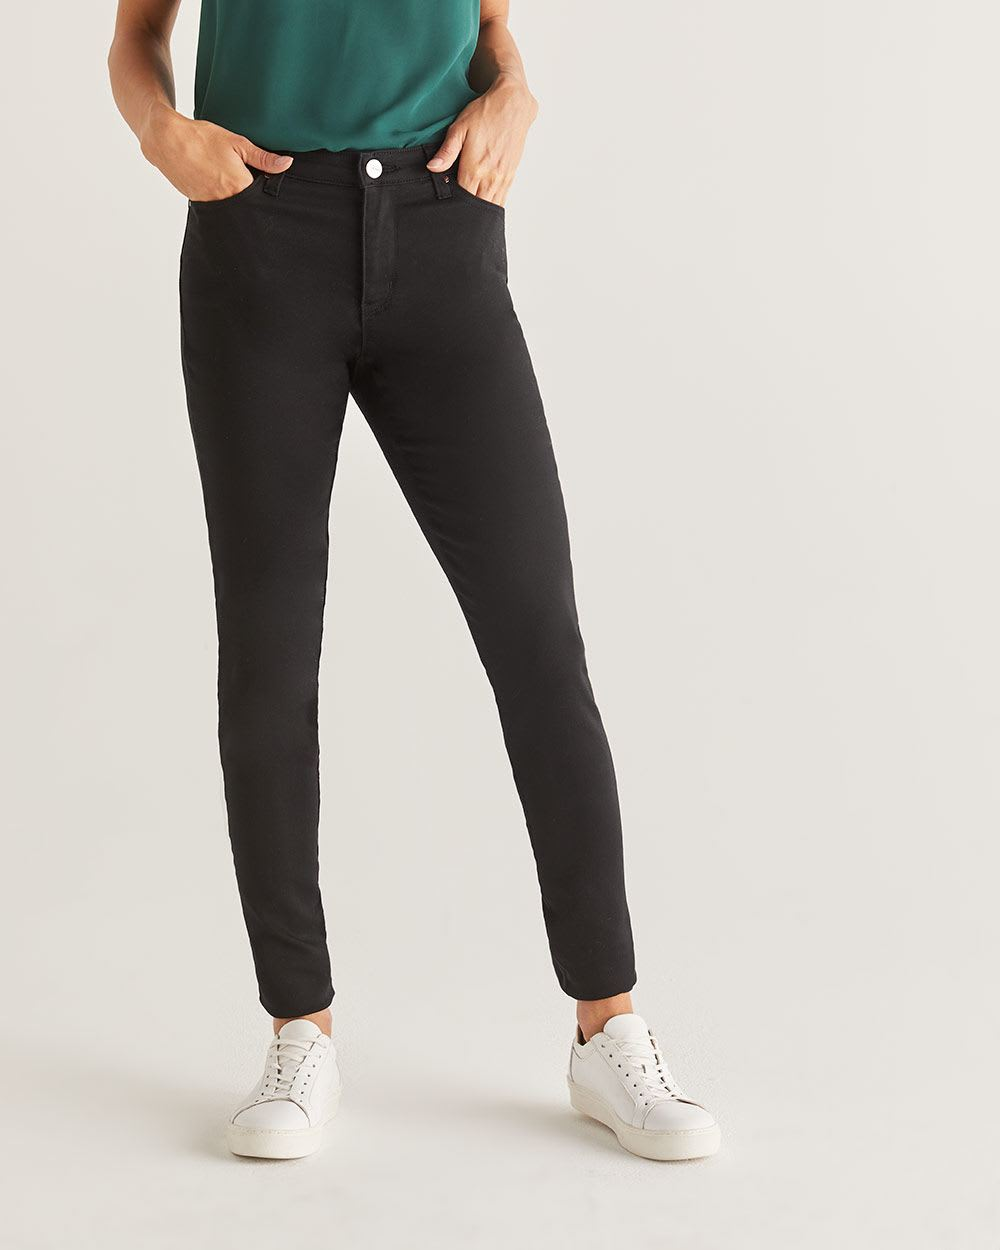 The Tall Sculpting Black Skinny Jeans